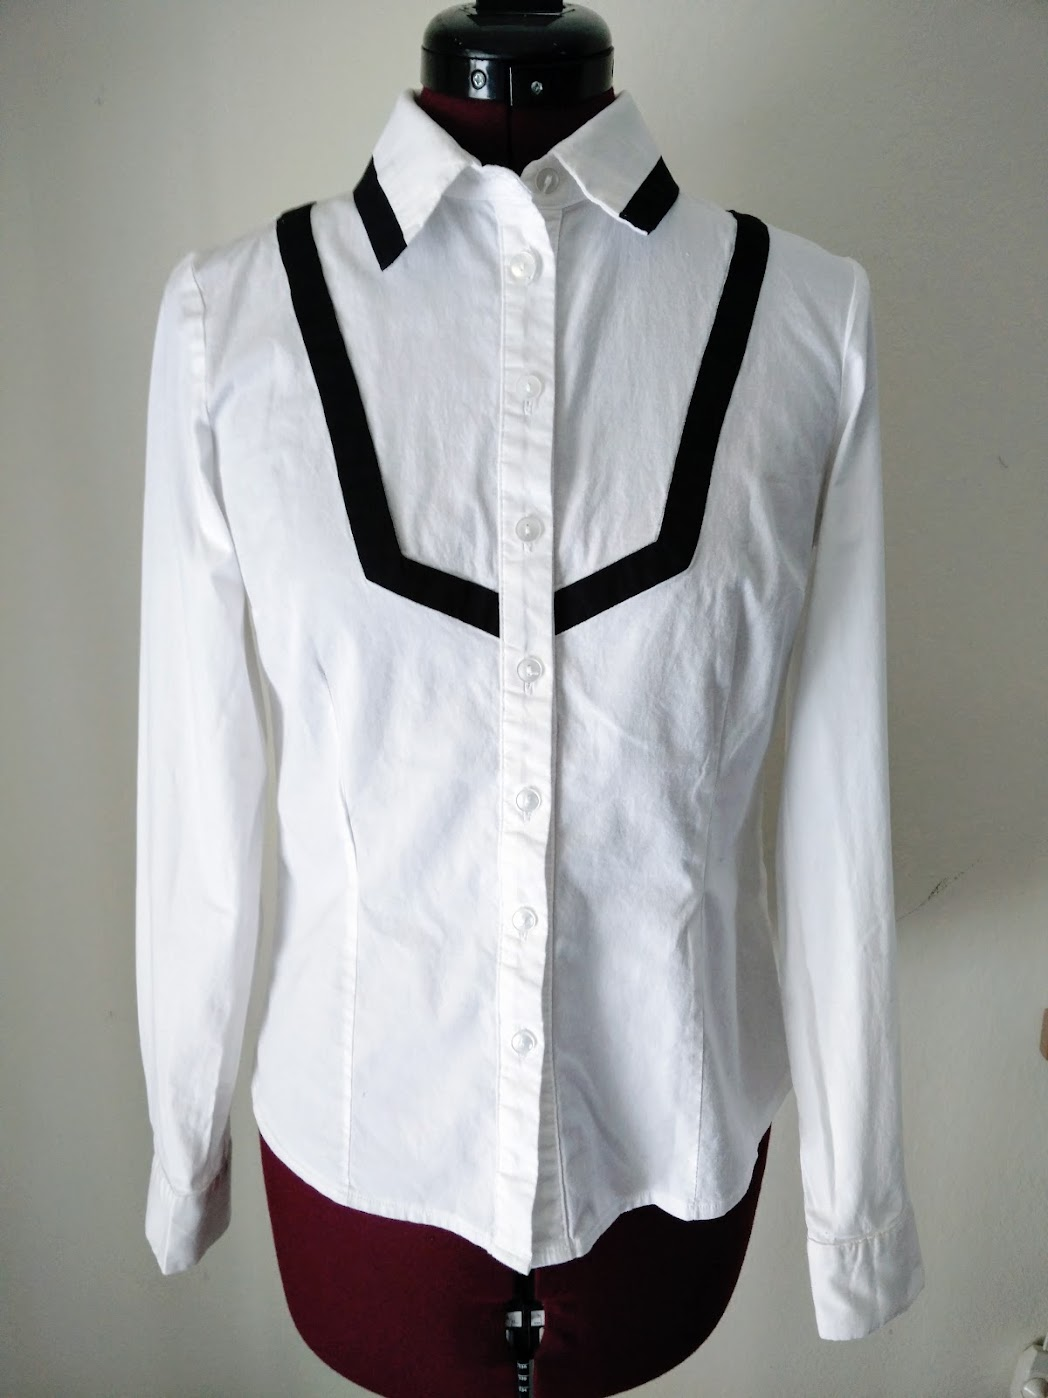 Material: Lace Ribbon Trim Bib Shirt Refashion - DIY Fashion Garments | fafafoom.com